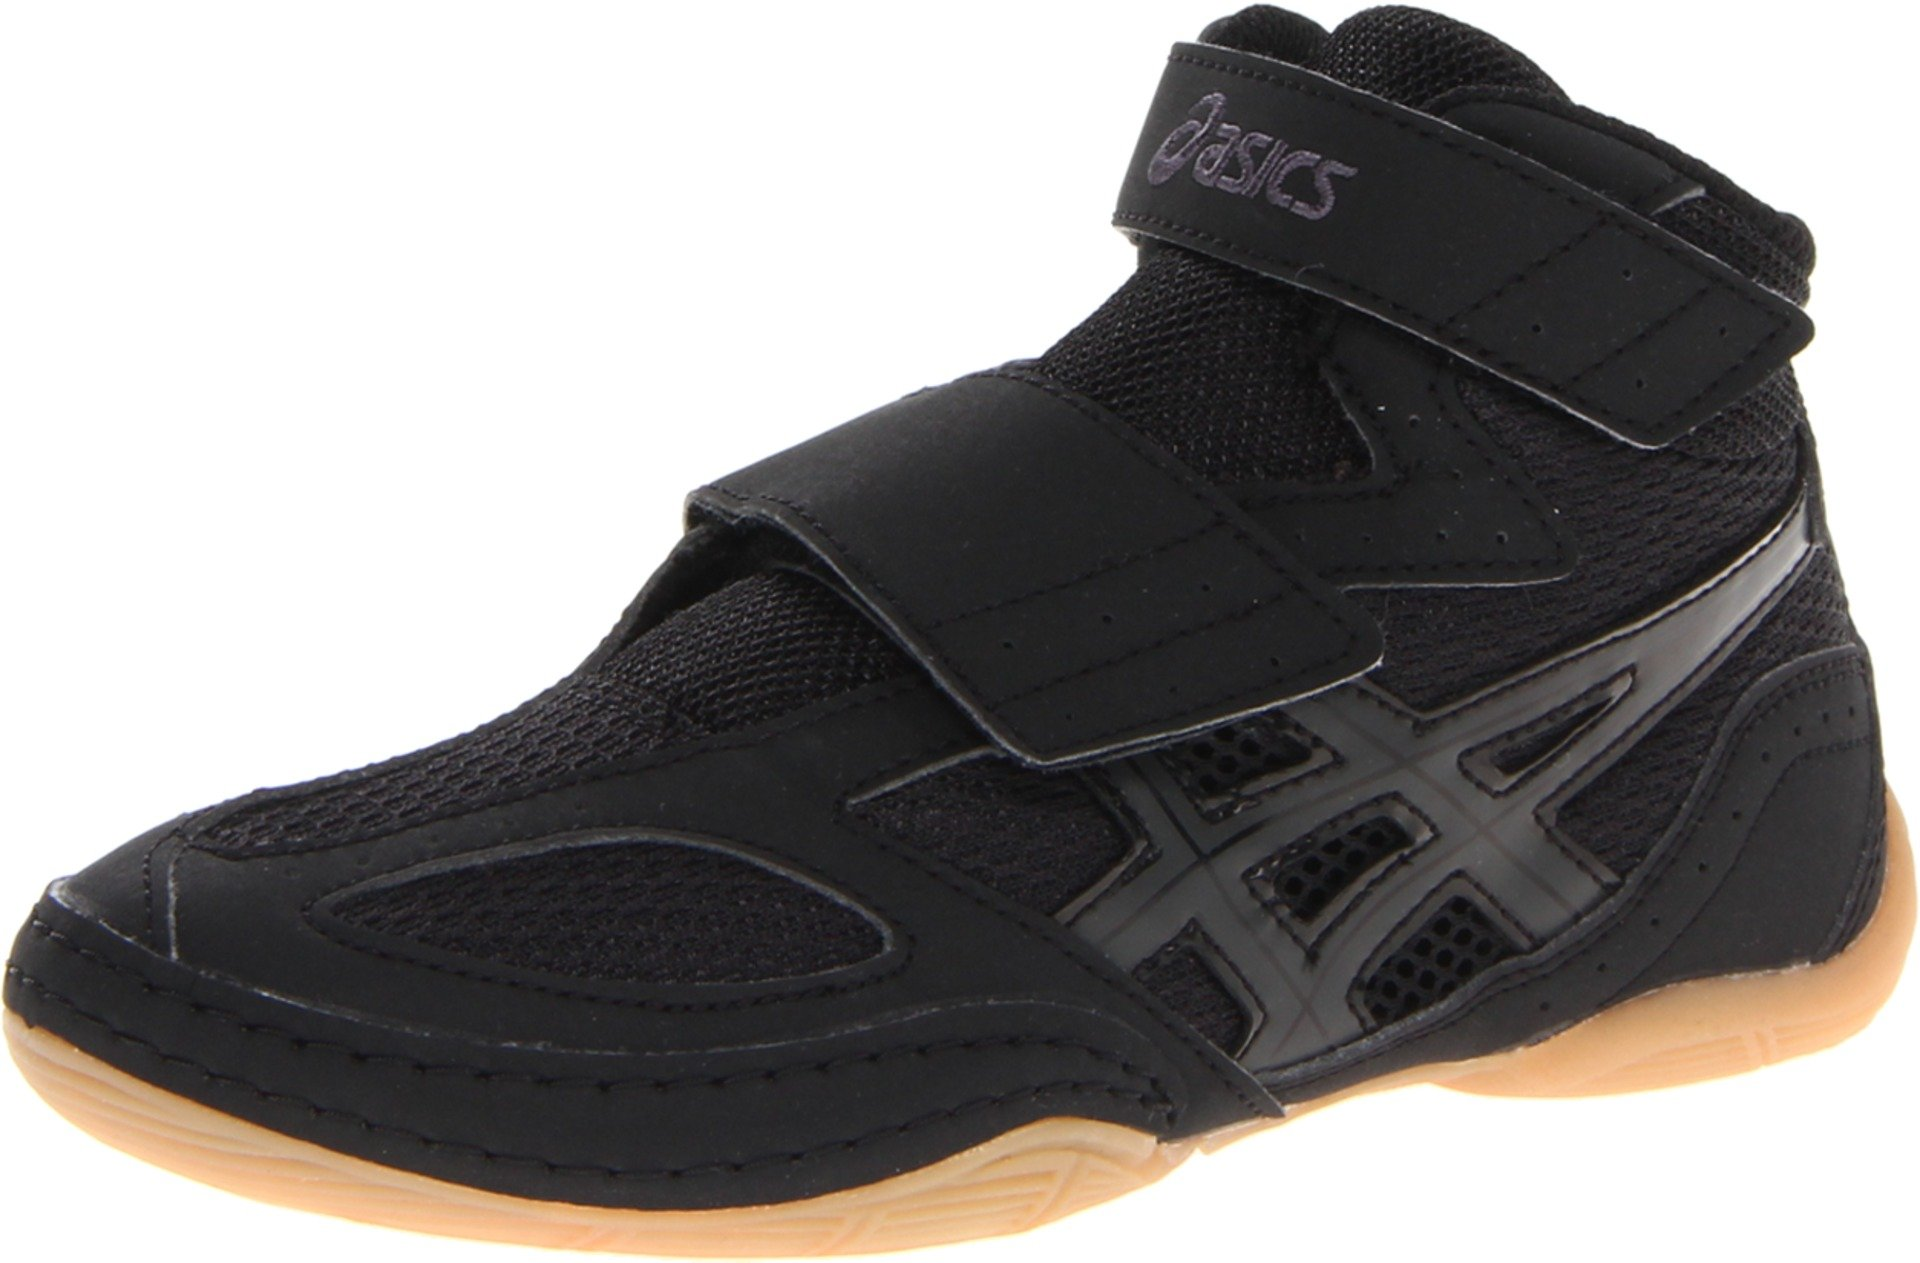 ASICS Matflex 4 GS Wrestling Shoe (Toddler/Little Kid/Big Kid),Black/Onyx,1.5 M US Little Kid by ASICS